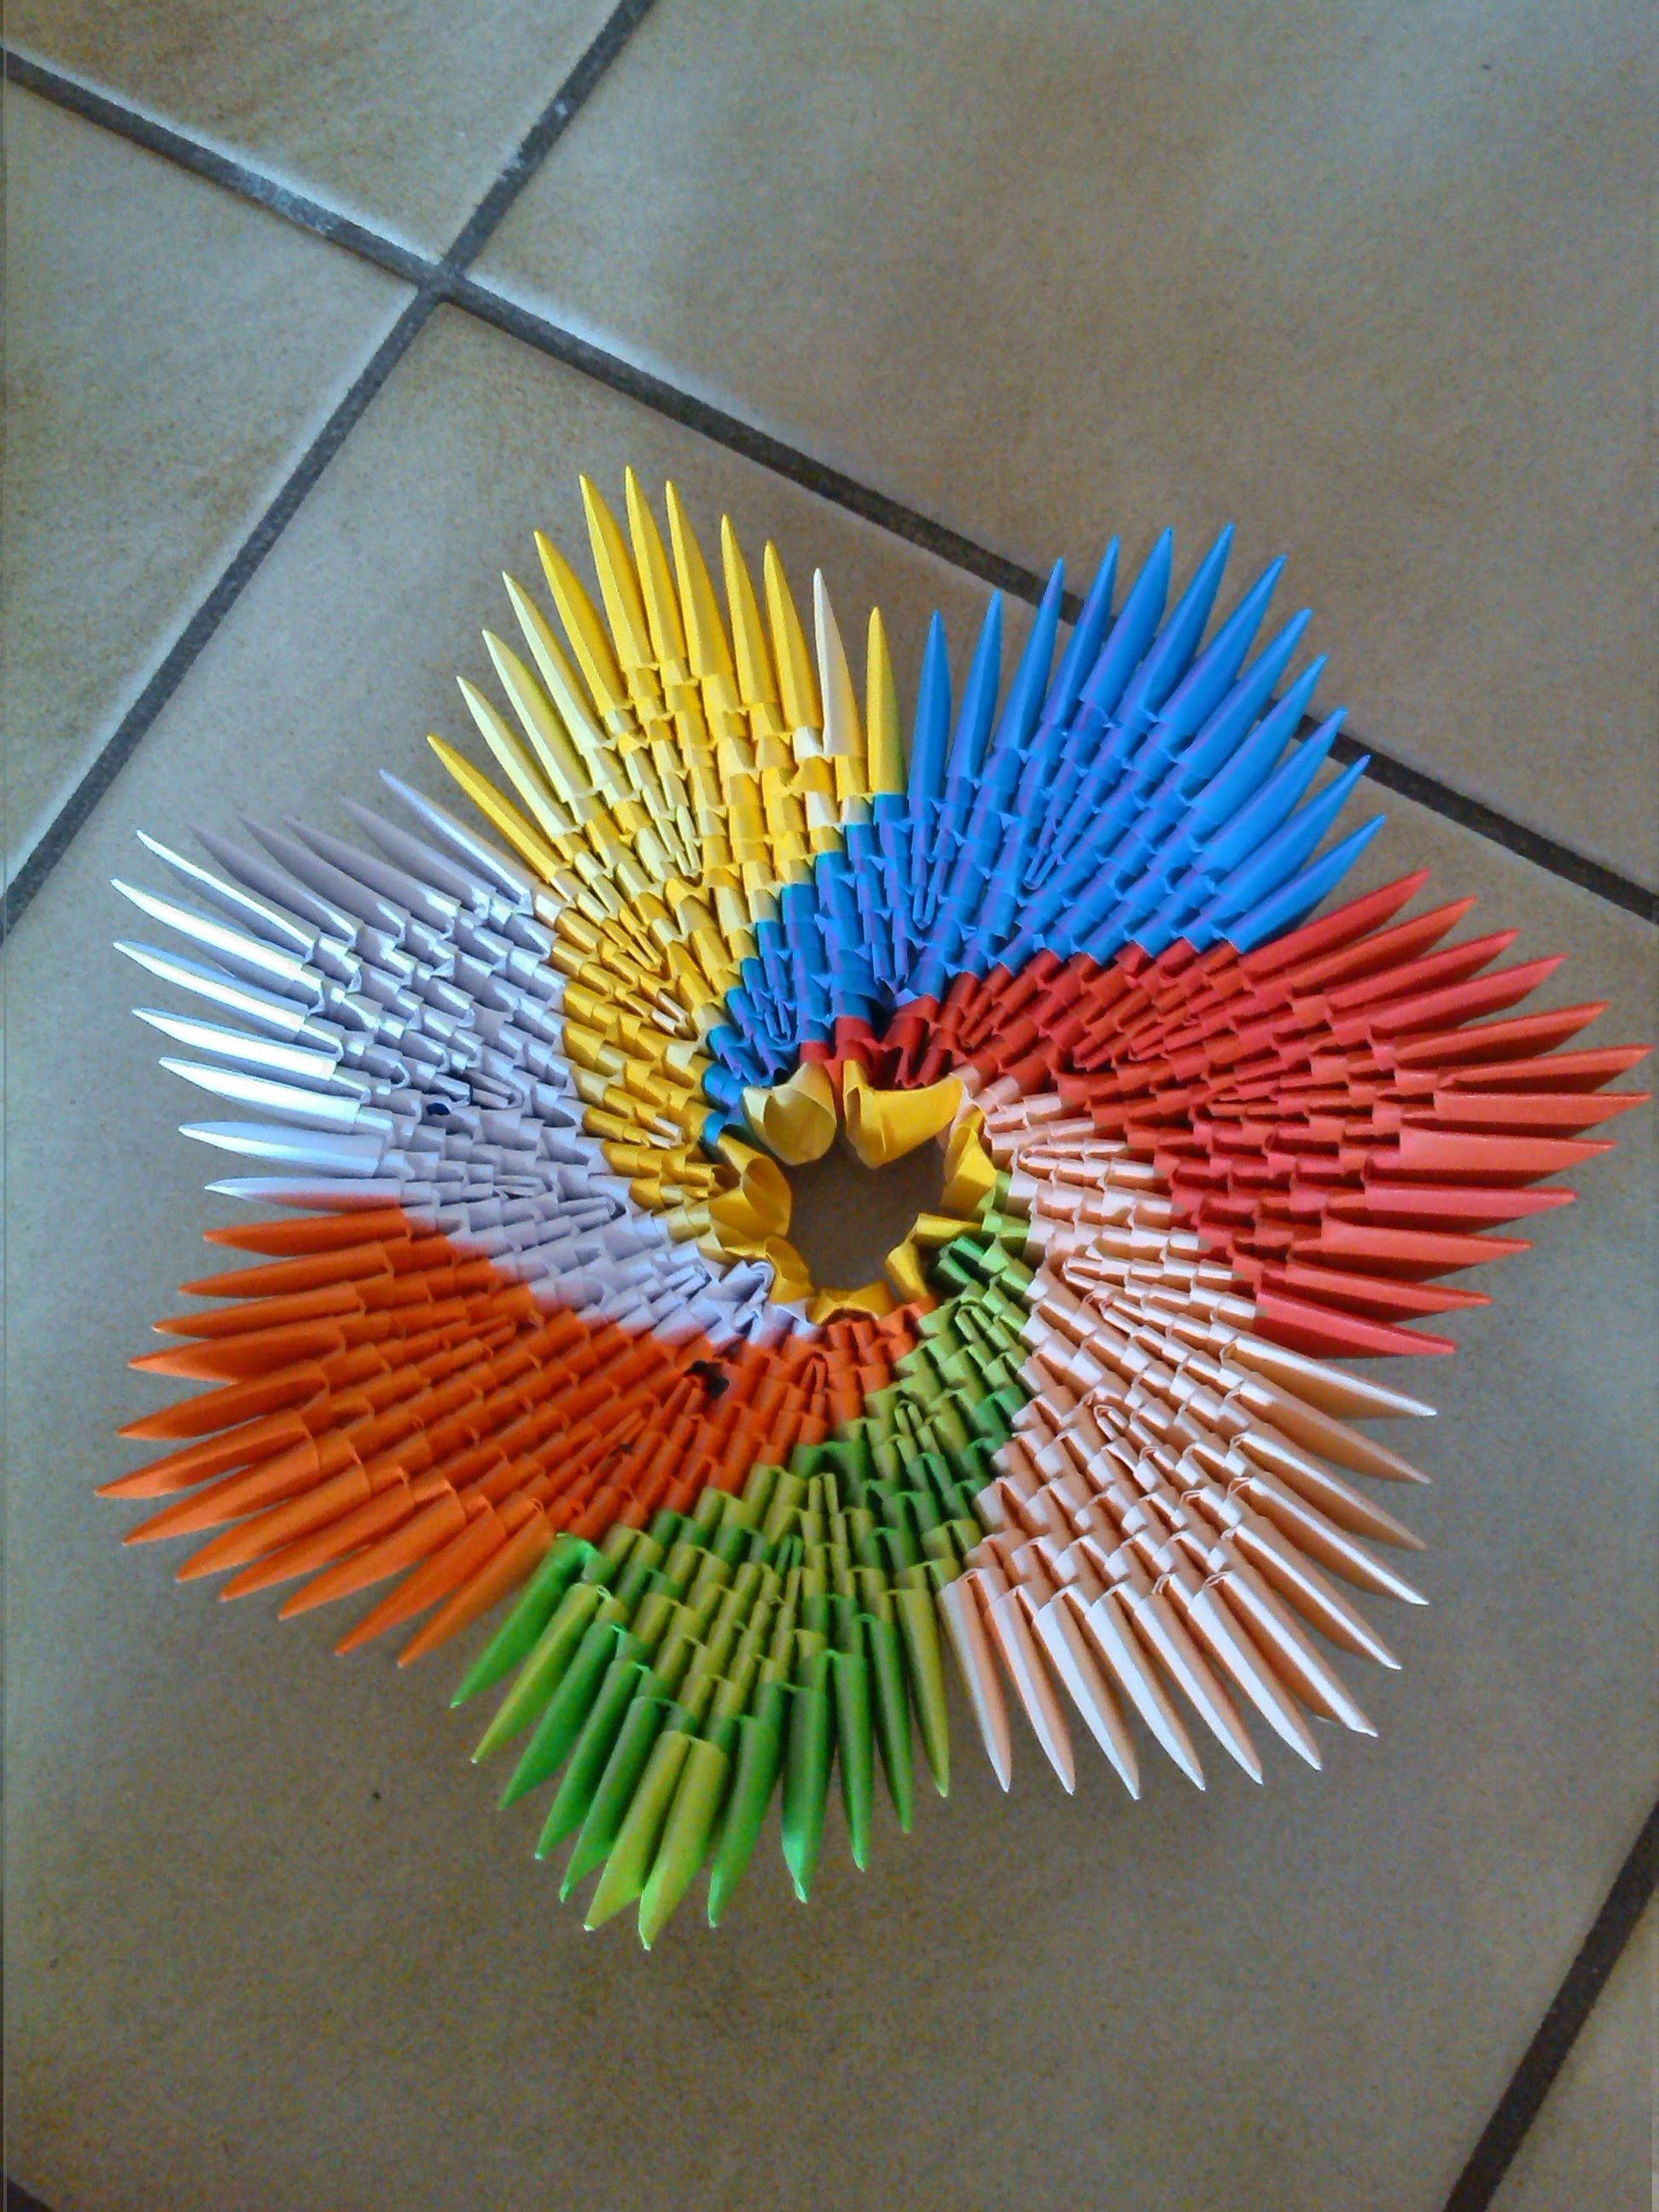 3d Paper Heart Craft: How To Make A 3d Origami Spiral Bowl